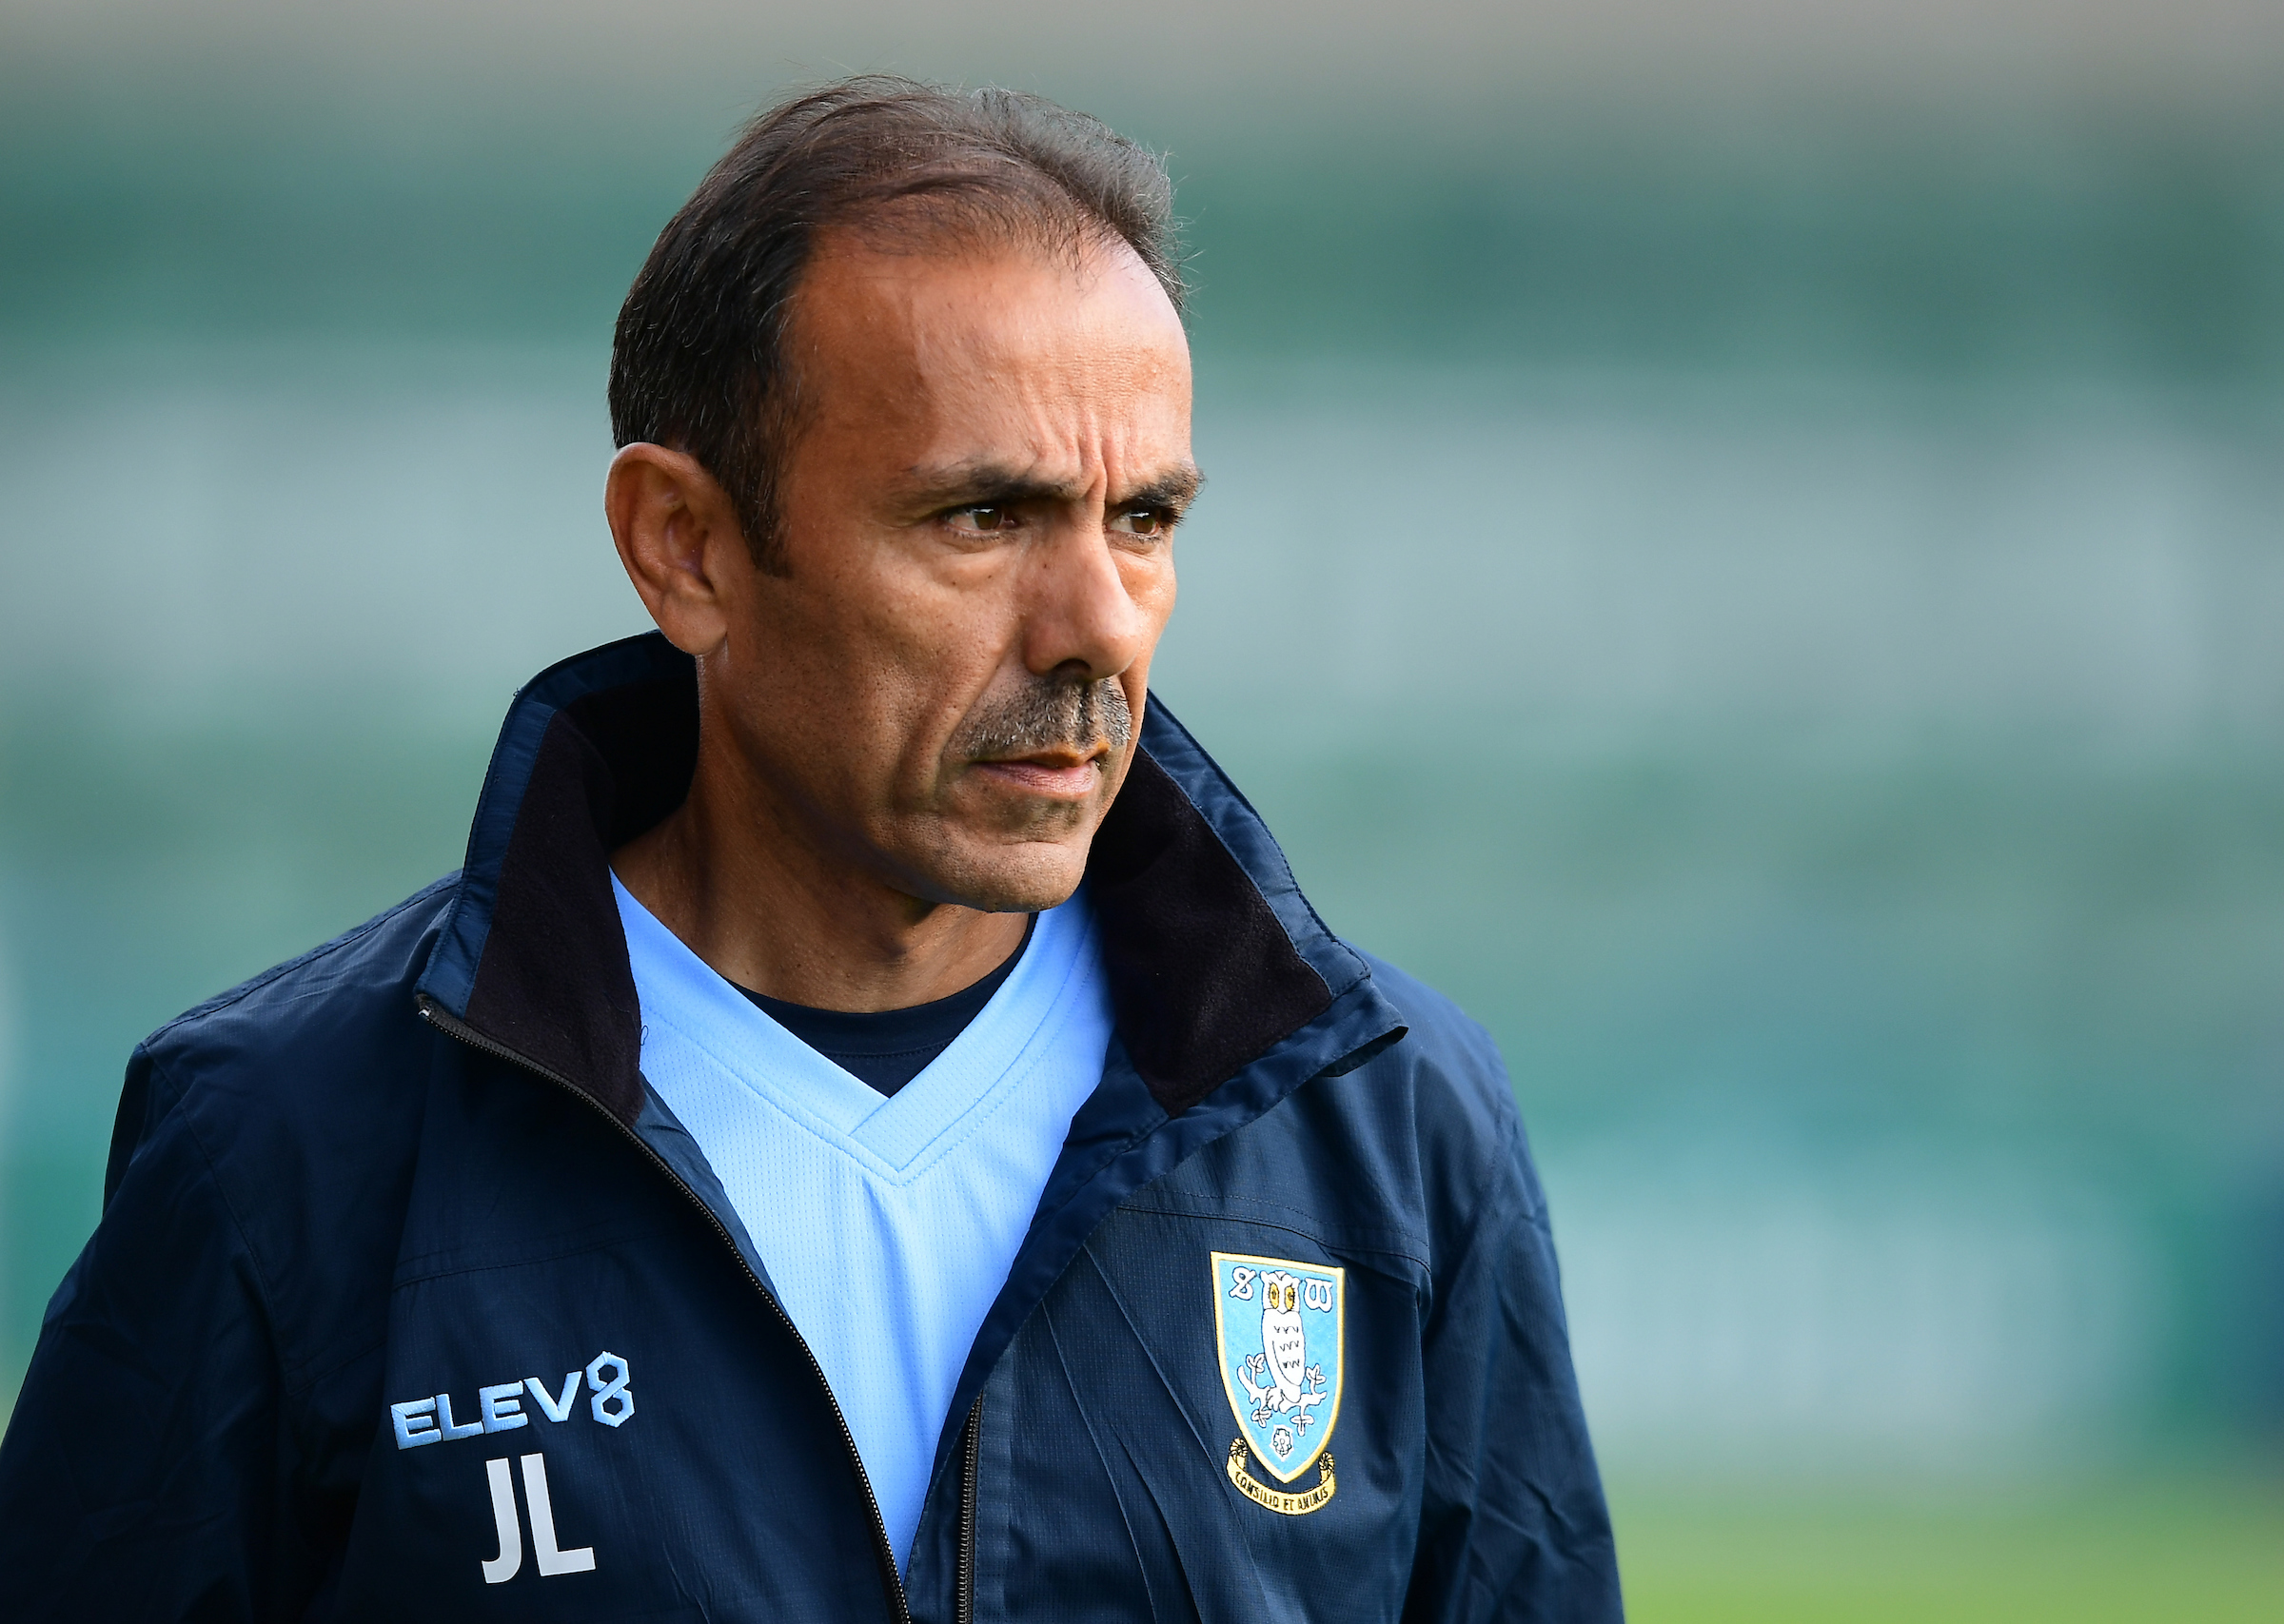 Sheffield Wednesday boss Jos Luhukay is under pressure to find results